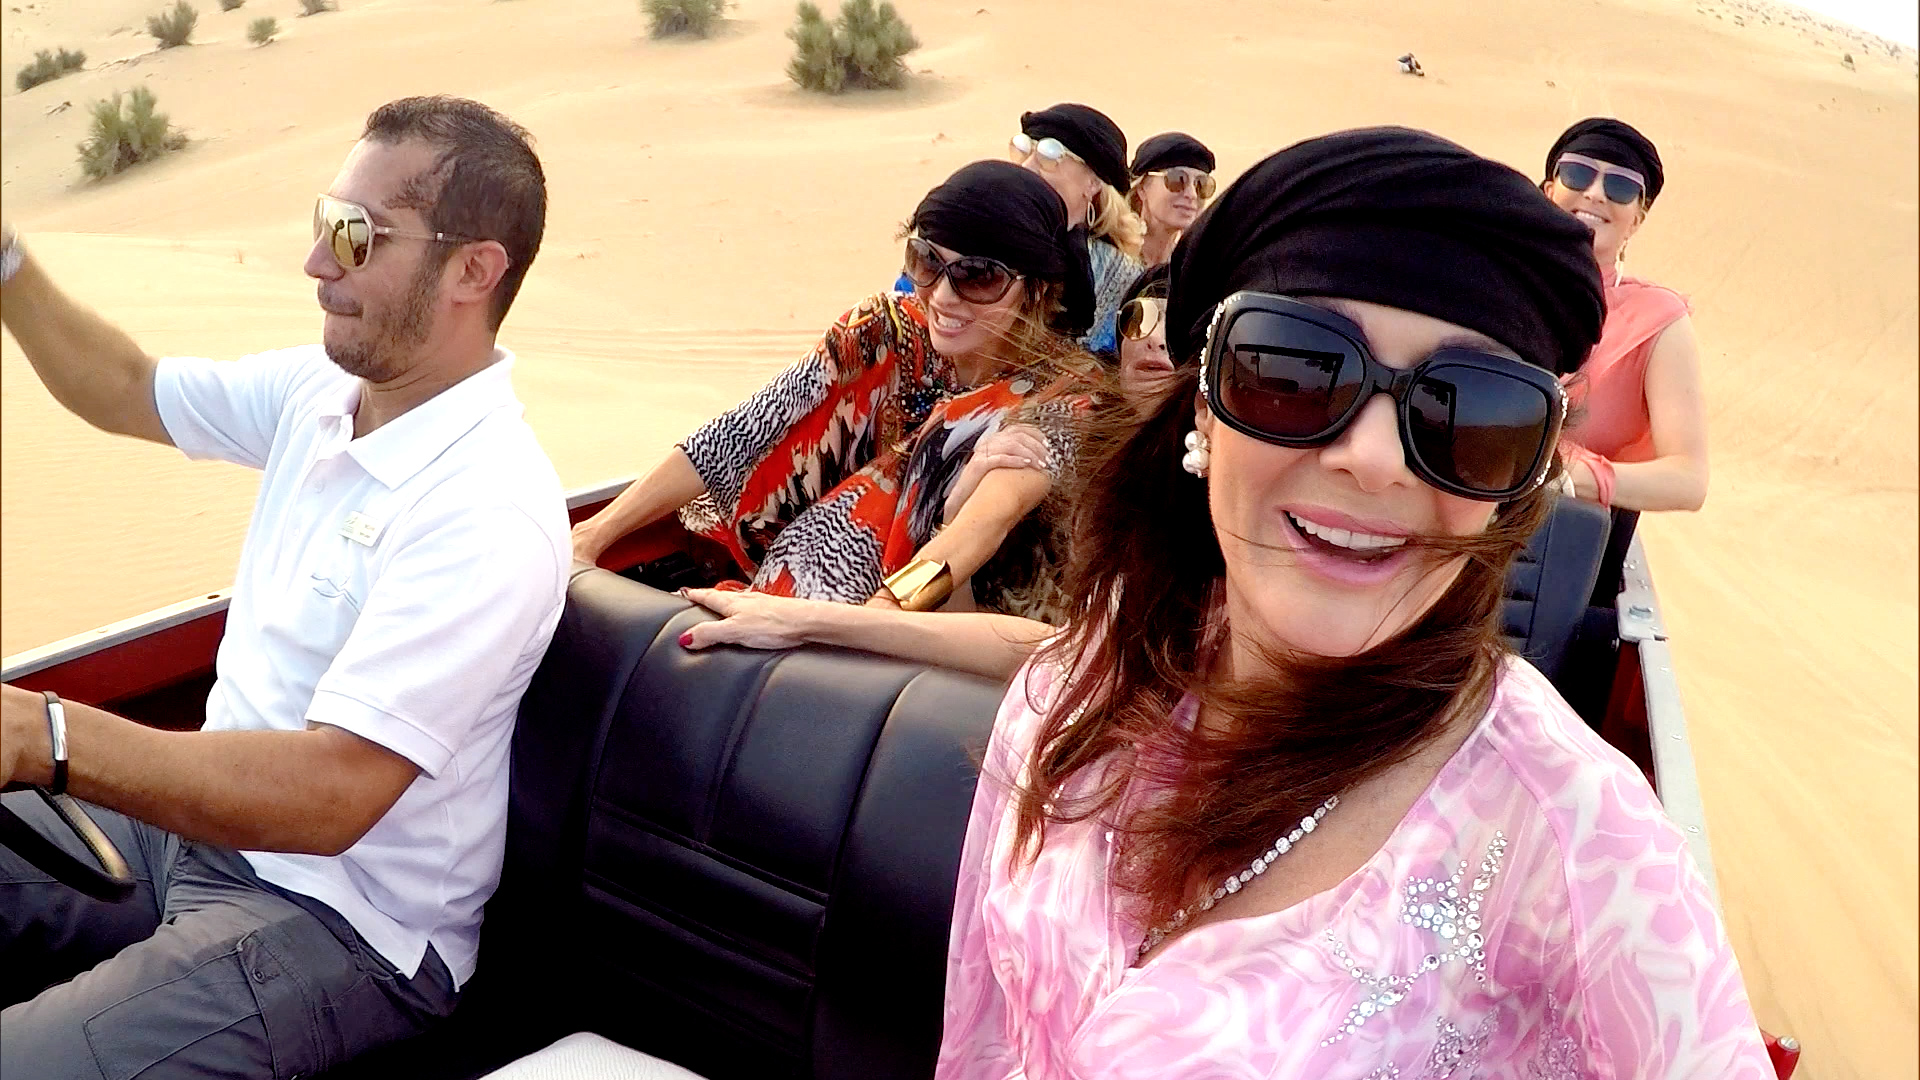 The 'Wives Go for a Drive in the Desert